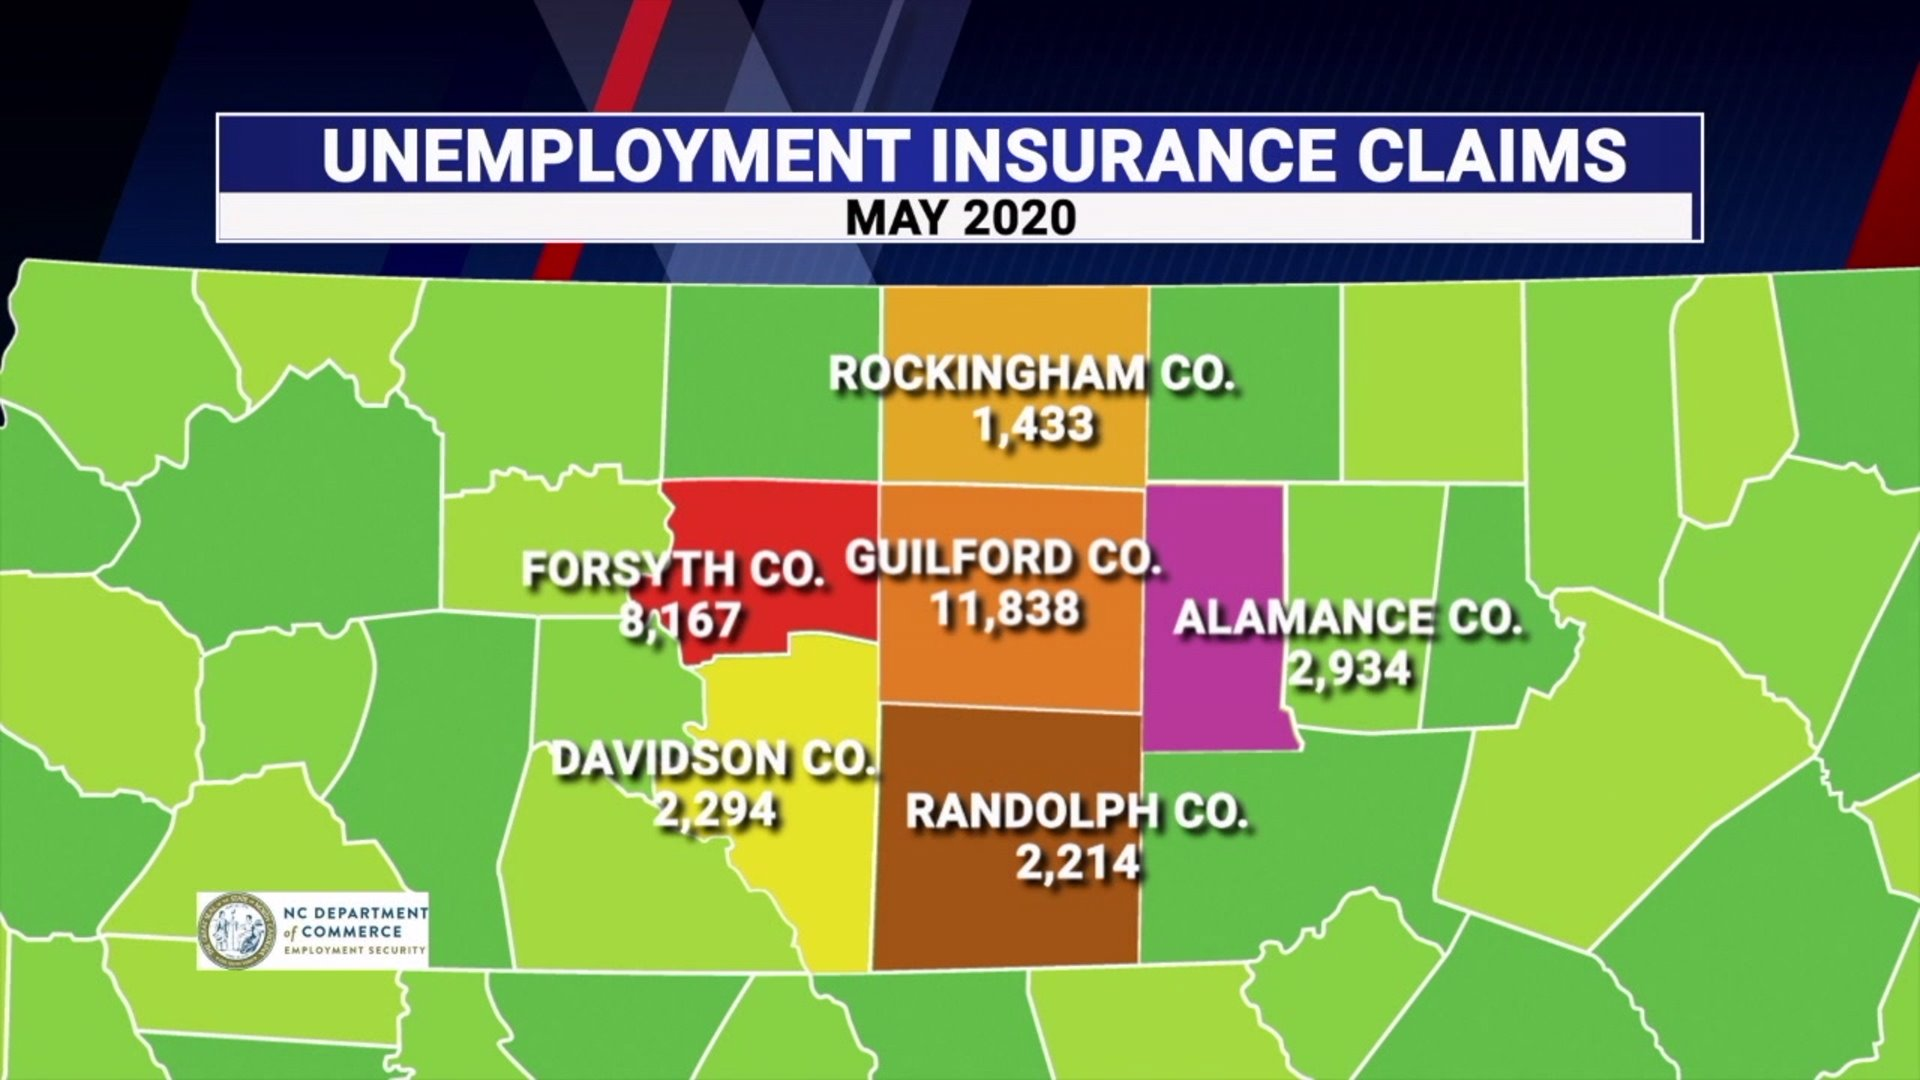 Some still struggle to file unemployment claims as Triad counties see drop in filings for month of May